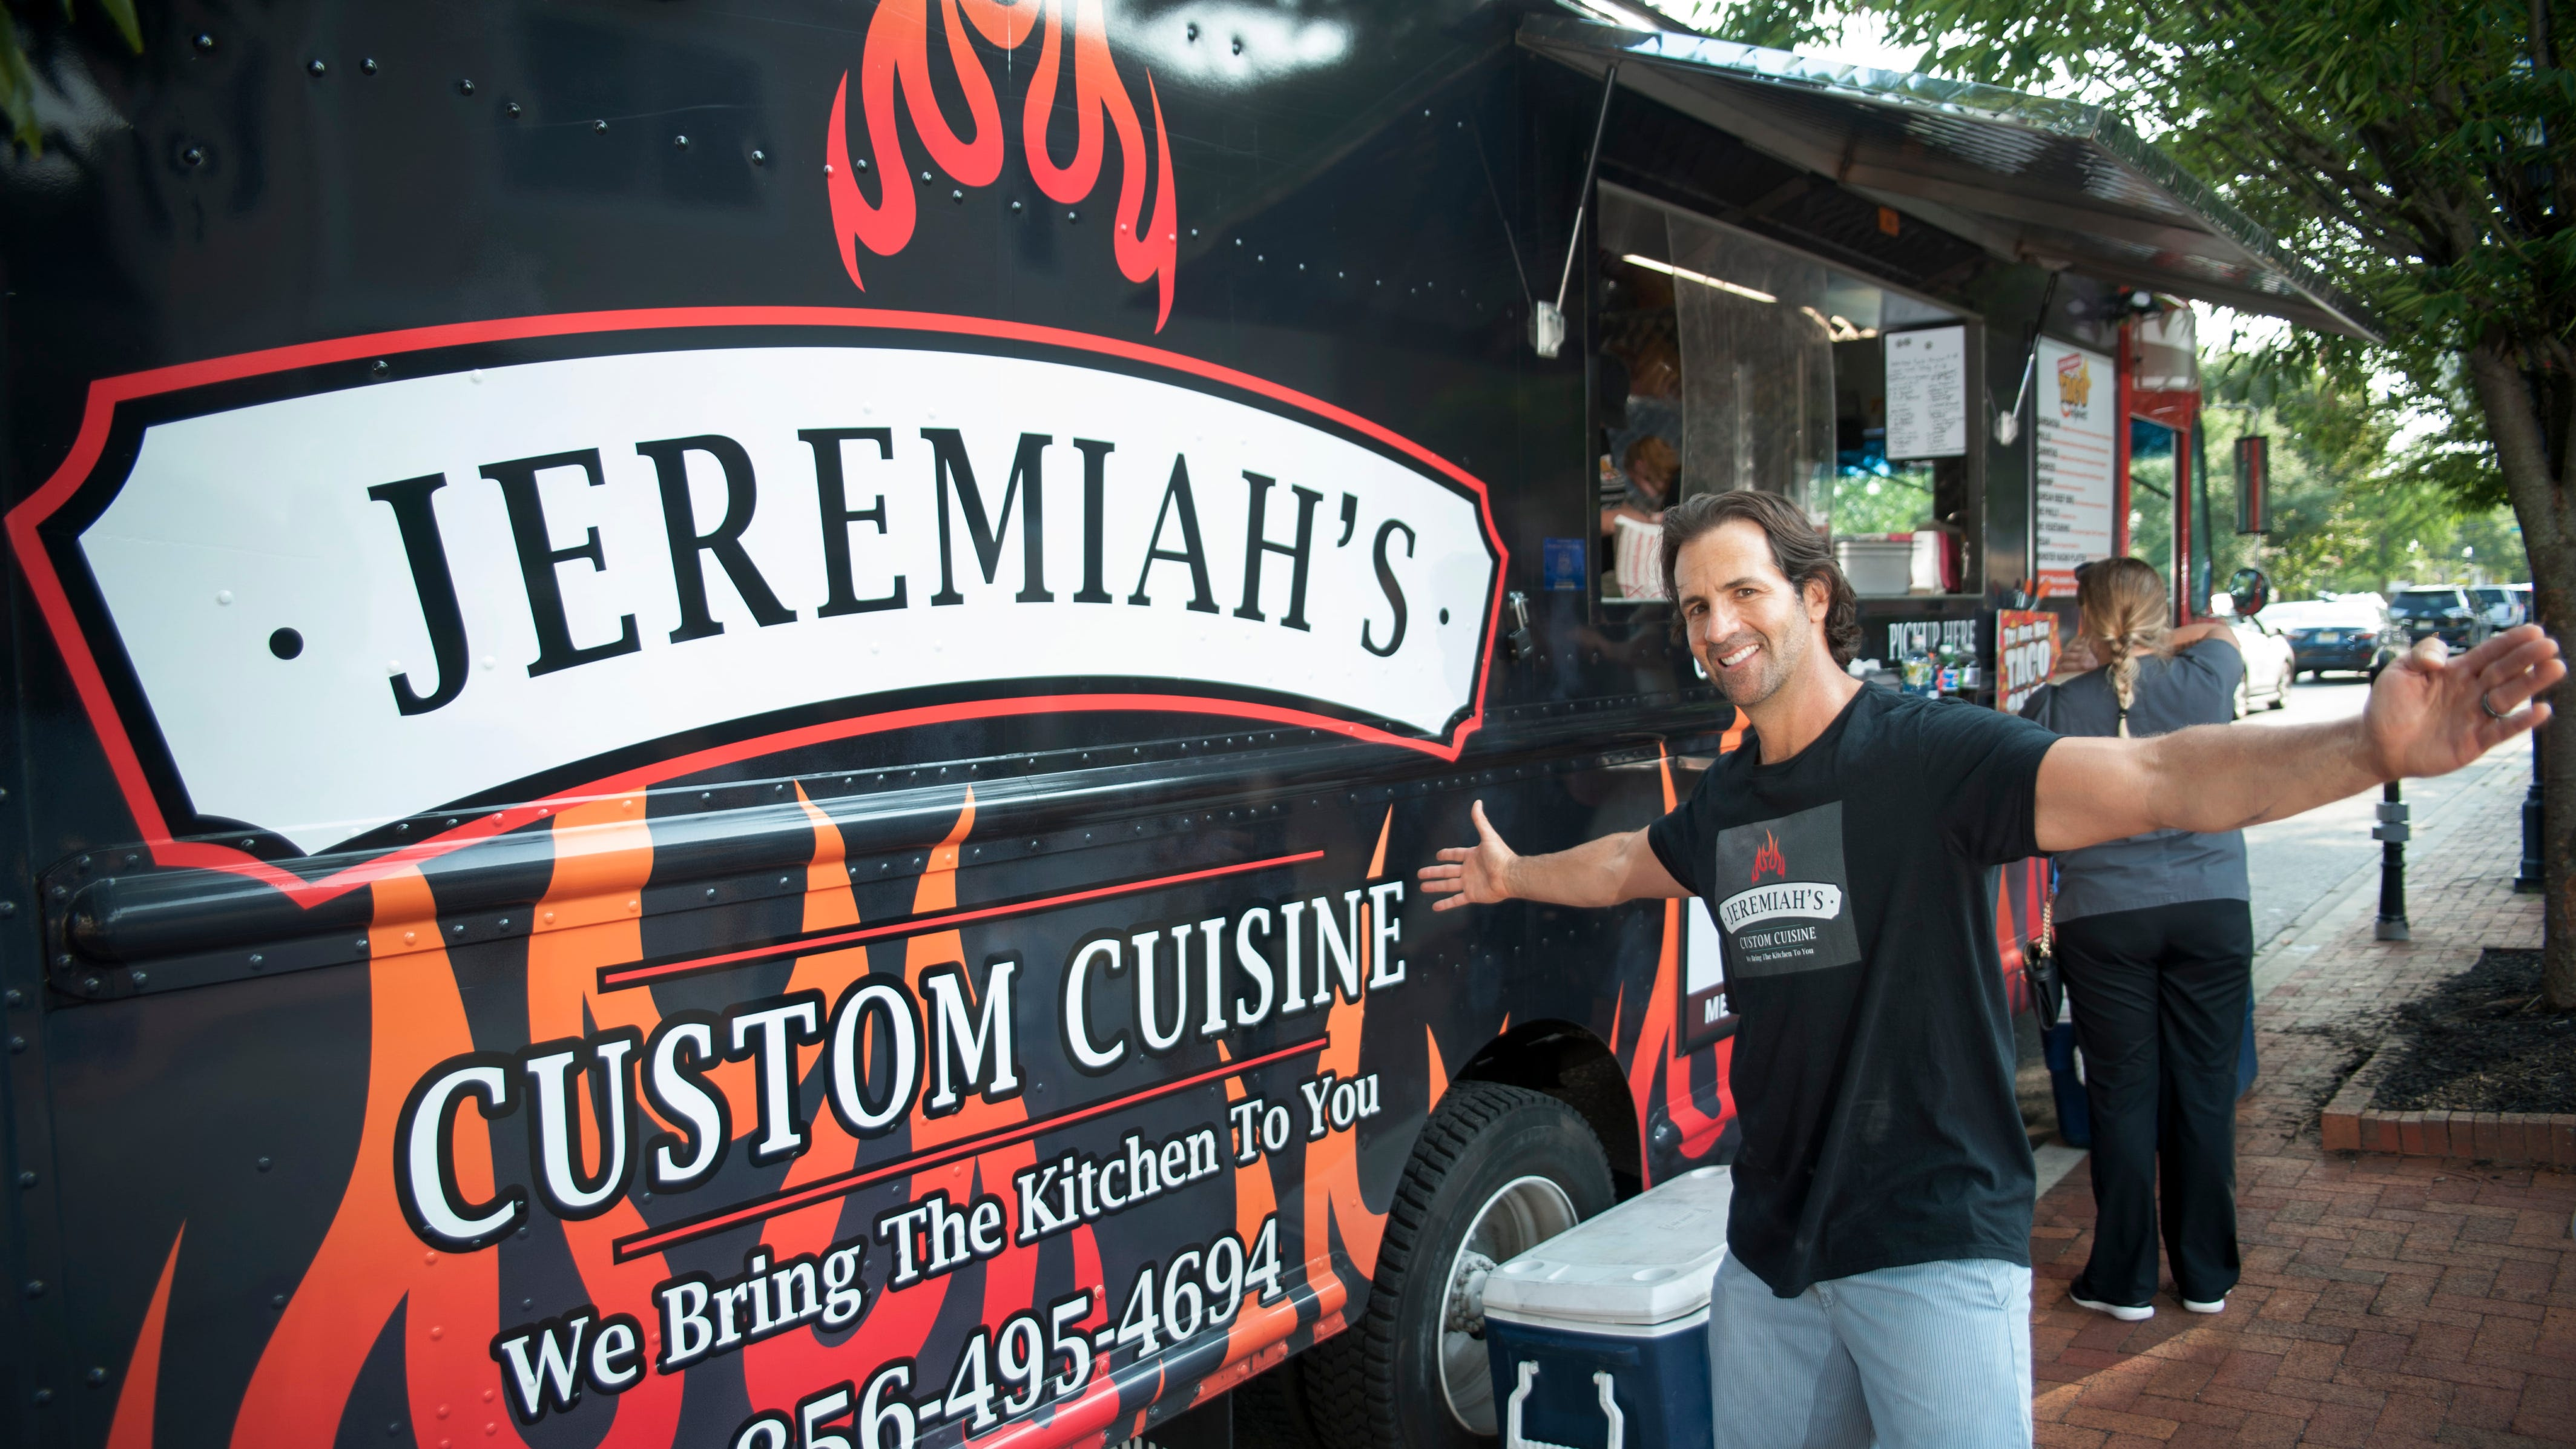 Jeremiah Bodner's food truck is a chameleon, offering four different cuisines as well as catering, to satisfy taco, cheesesteak, sliders and other cravings.